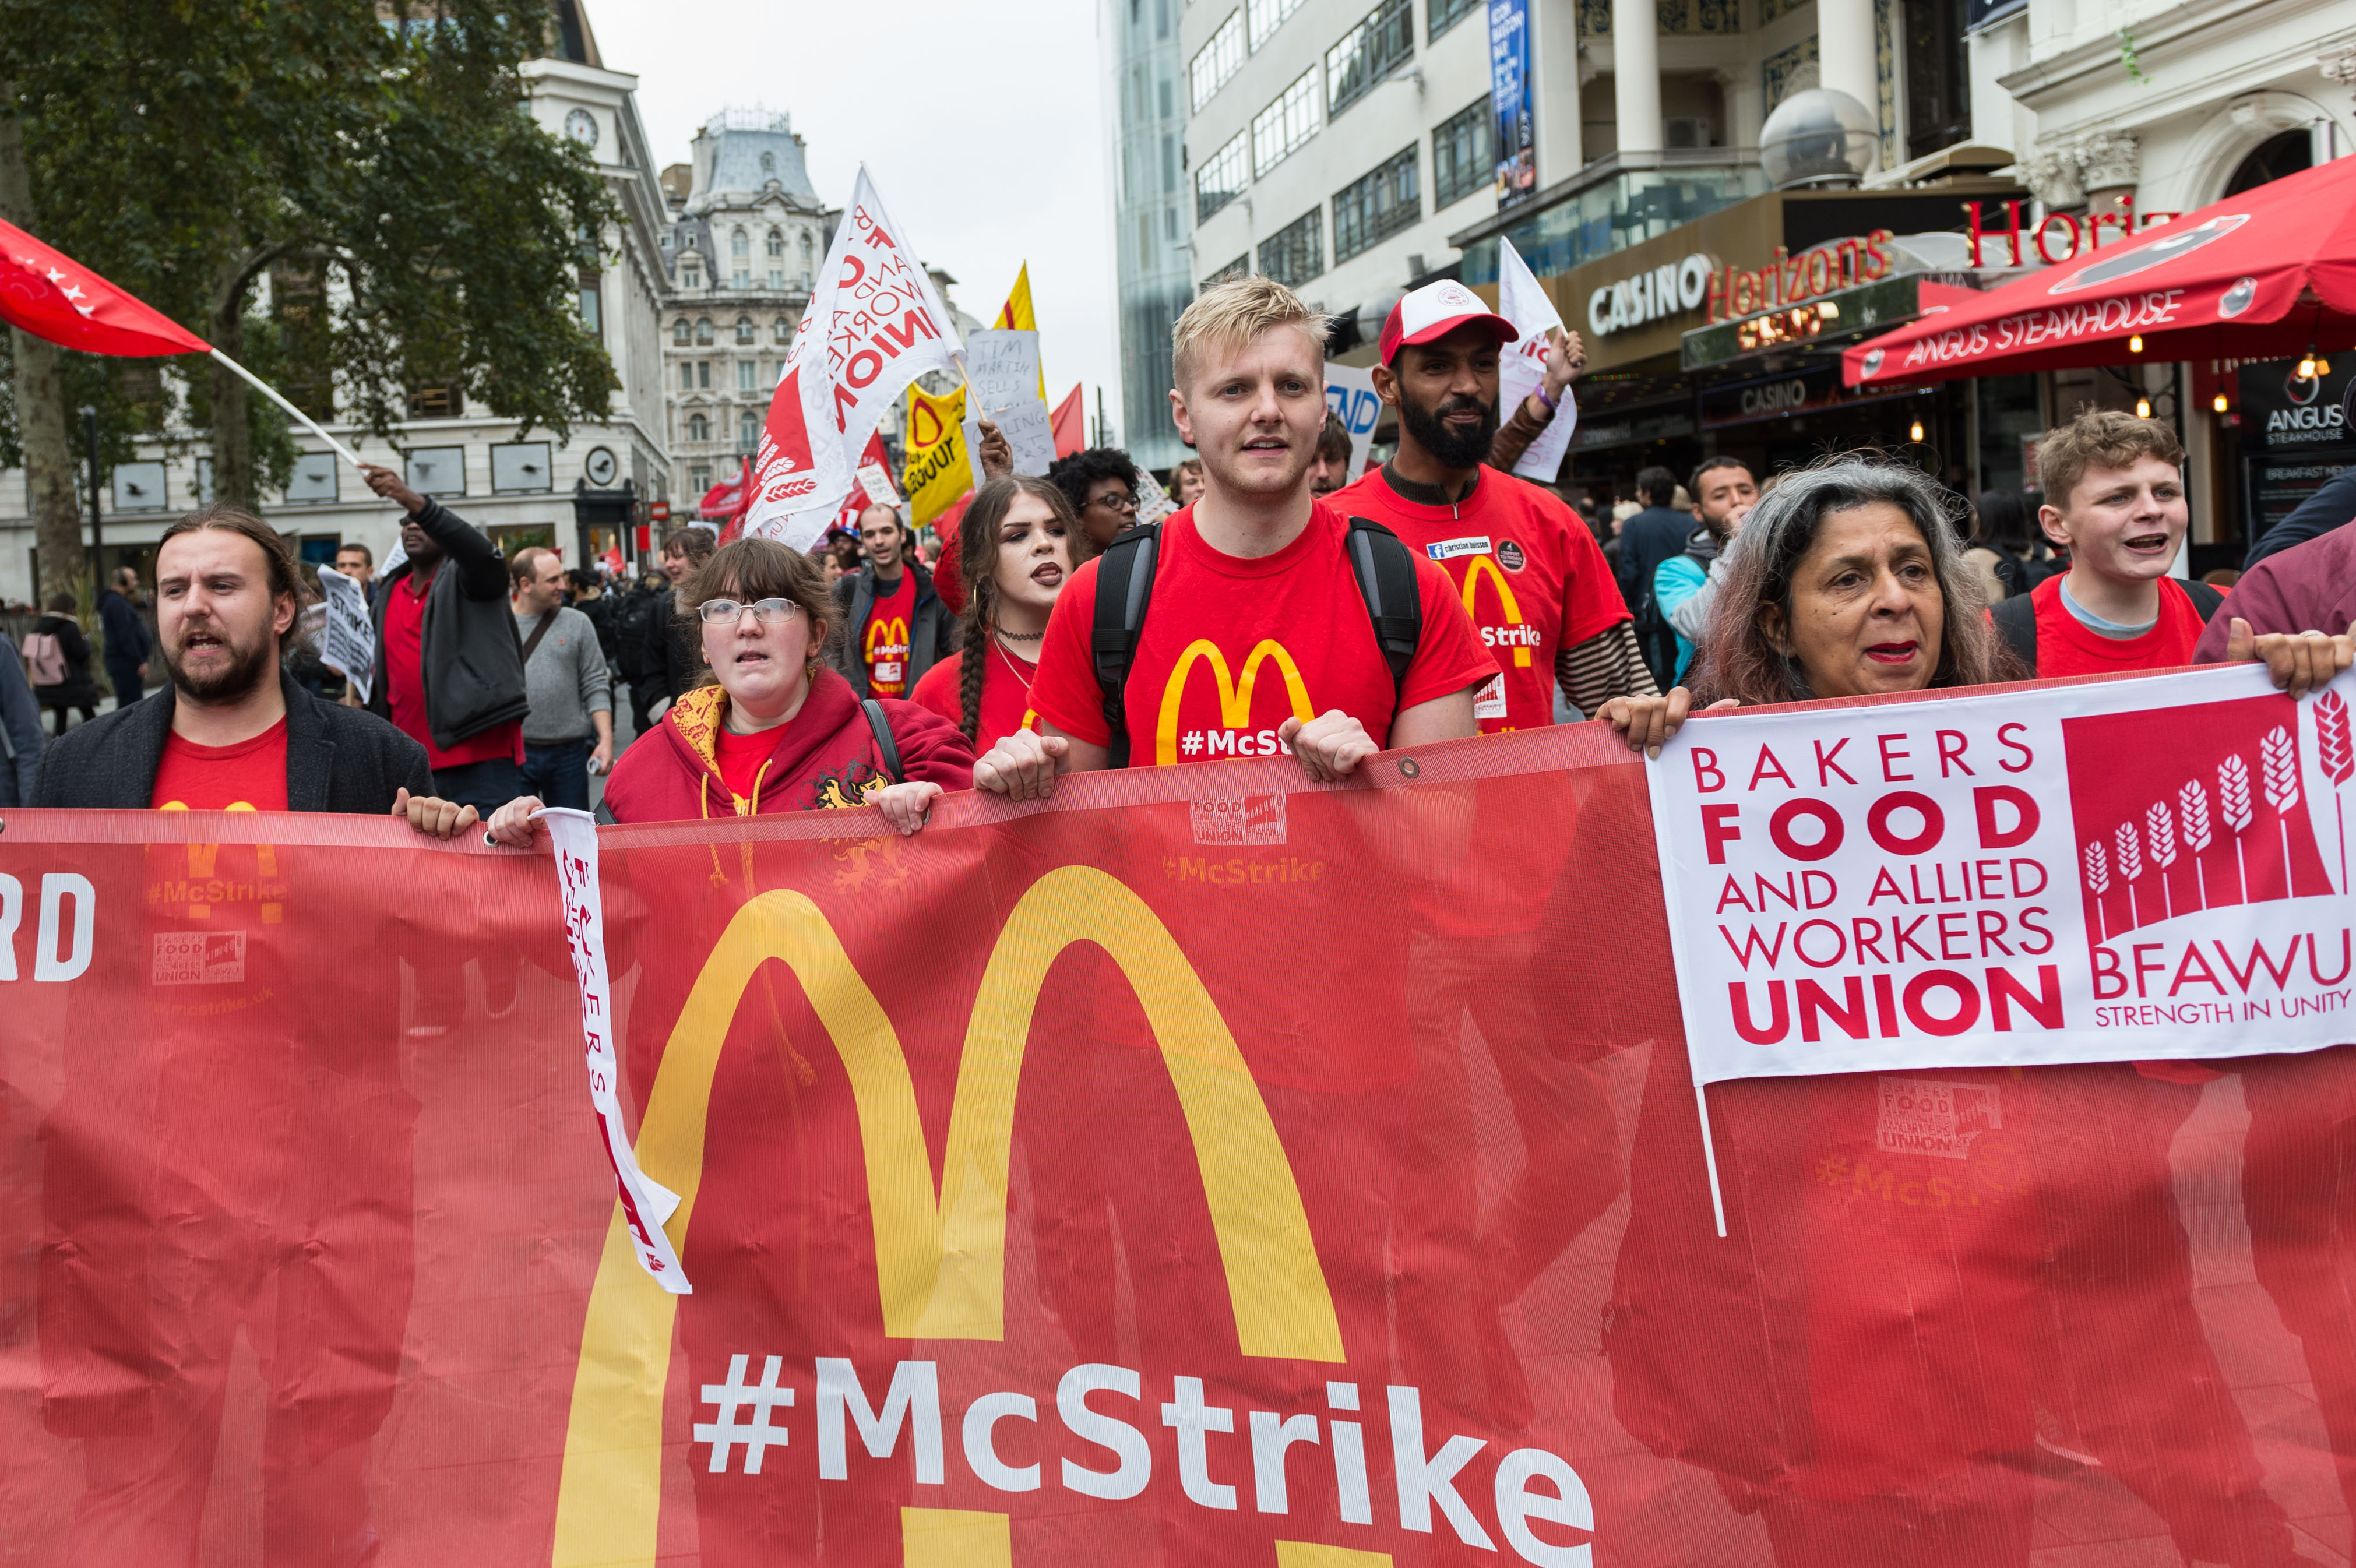 McDonald's workers go on strike over pay at fast food chain